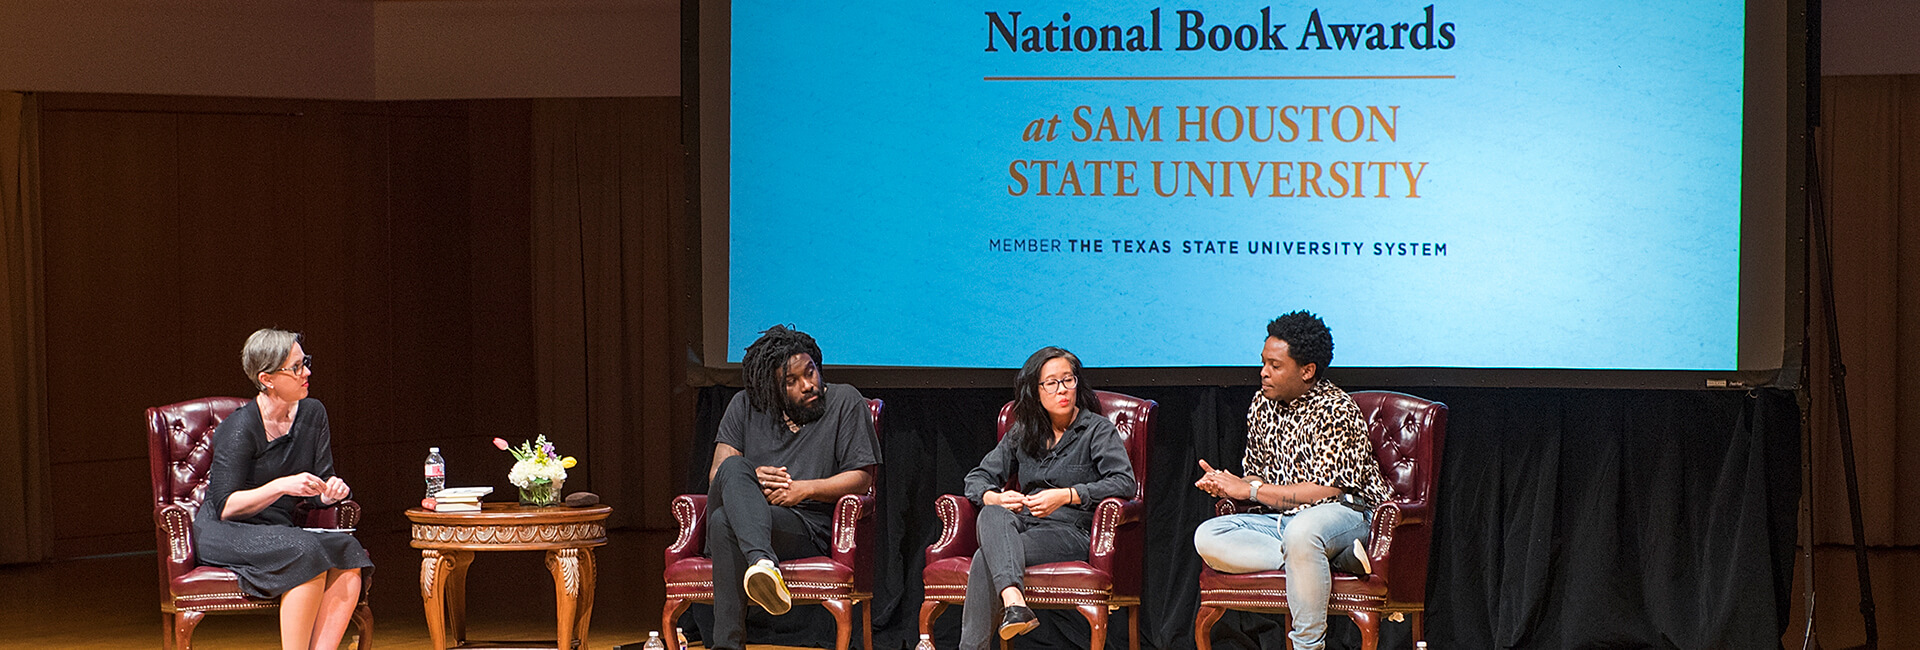 National Book Awards Stage with 4 people sitting in chairs